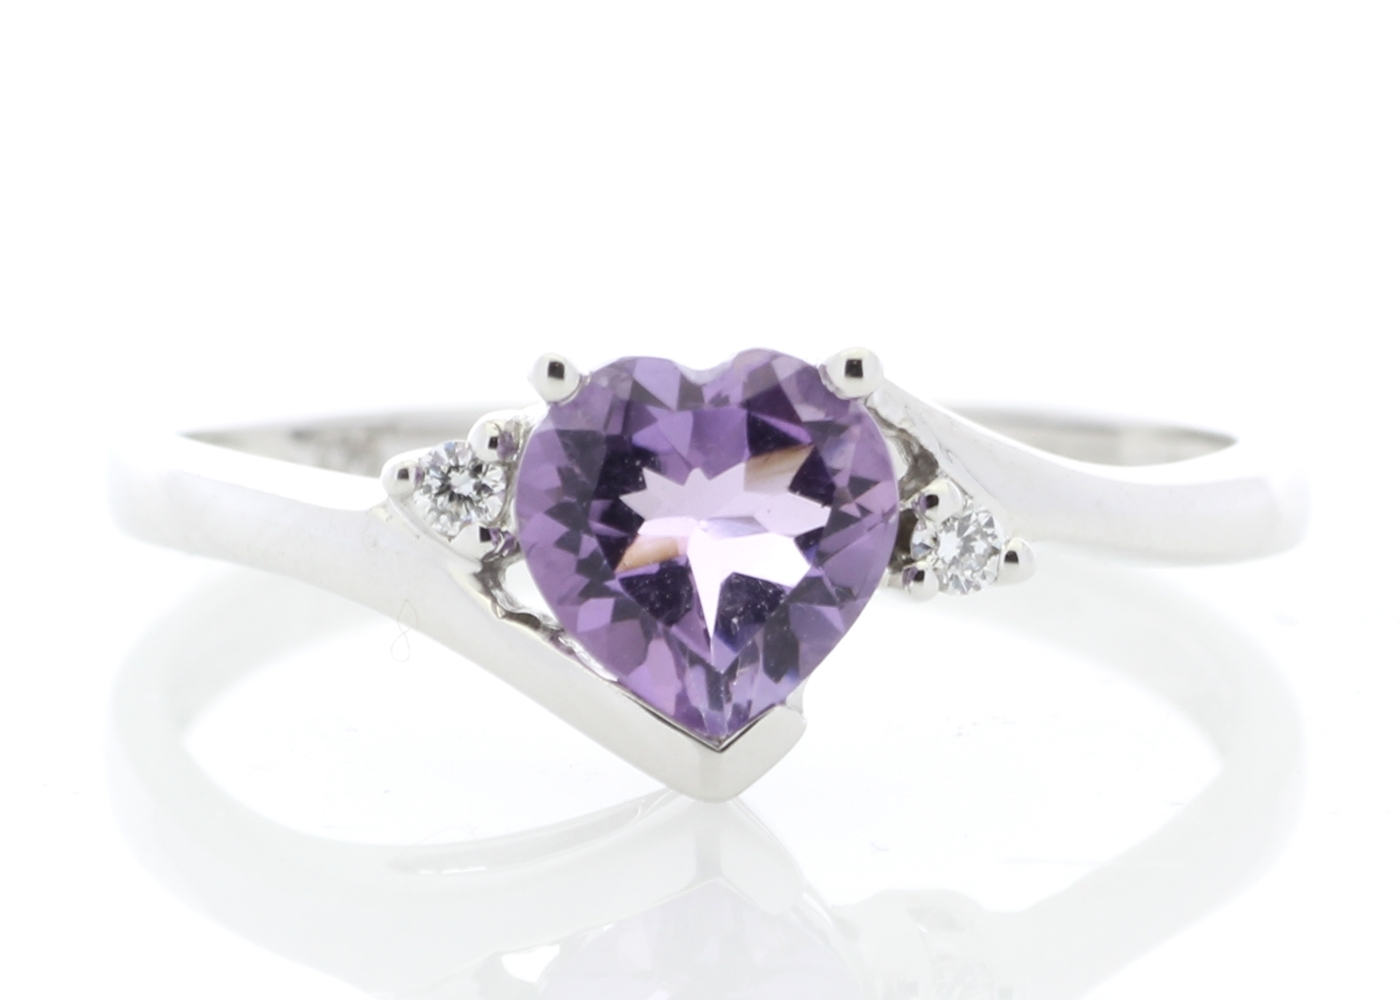 081c4e2a0ca35 Details about Amethyst Ring Diamond 9 carat White Gold Cert AGI FREE Ship  ~RRP £345